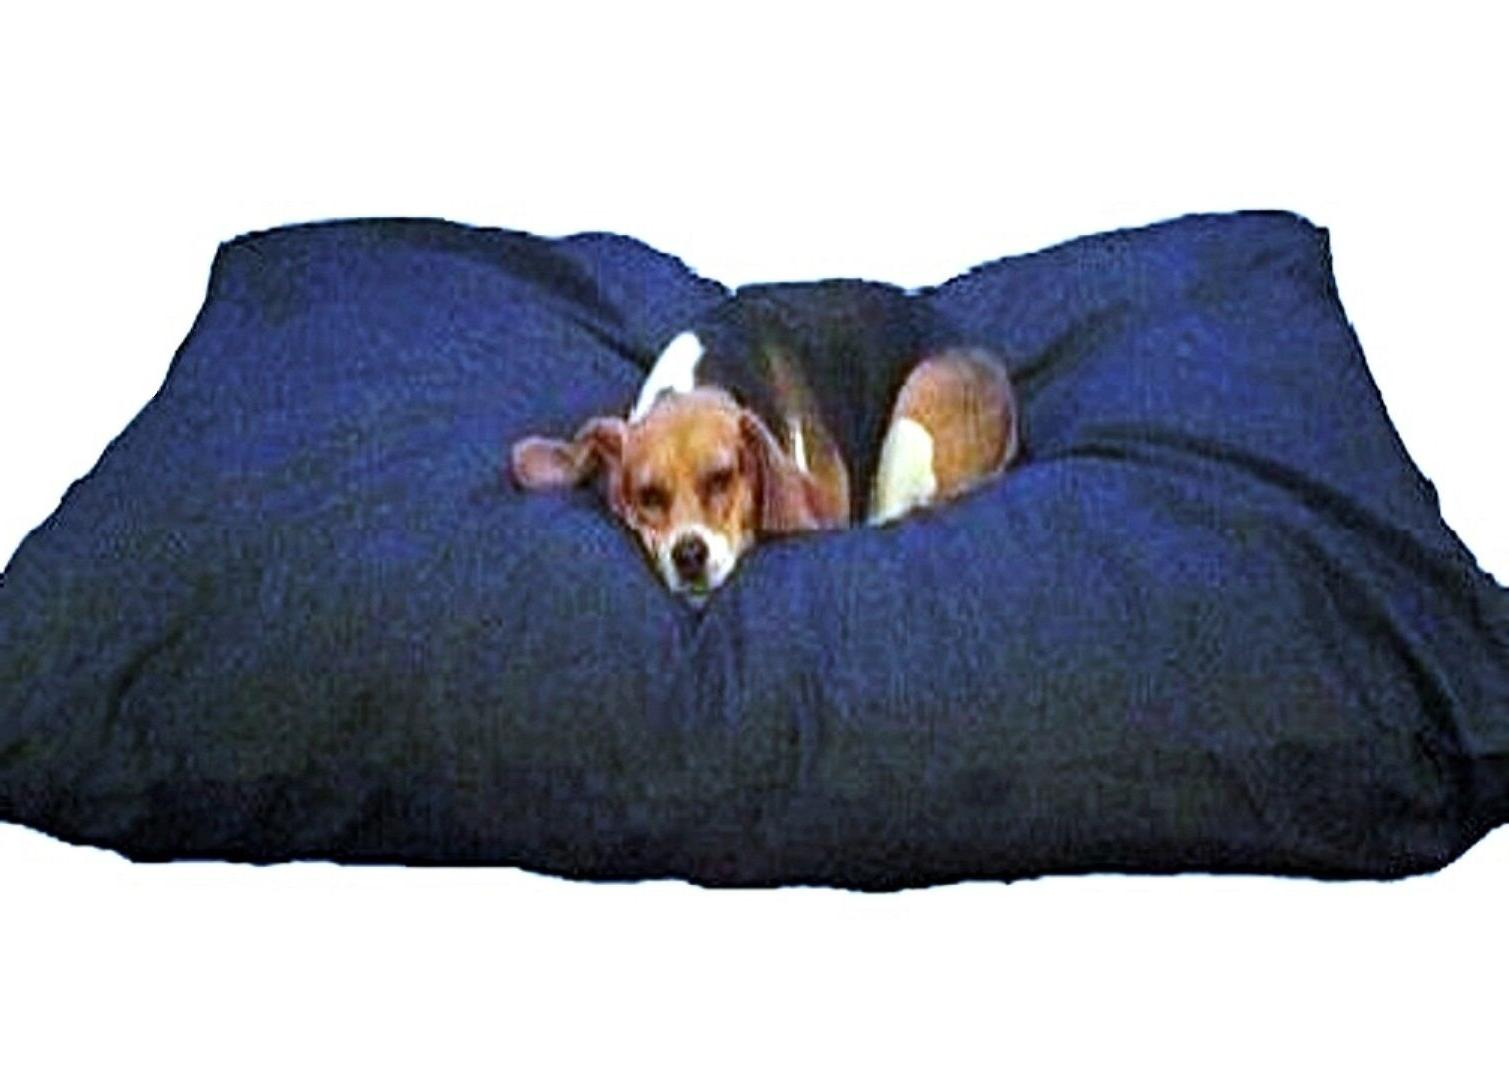 Blue Memory Foam Shredded Dog Bed Pillow, Waterproof liner,